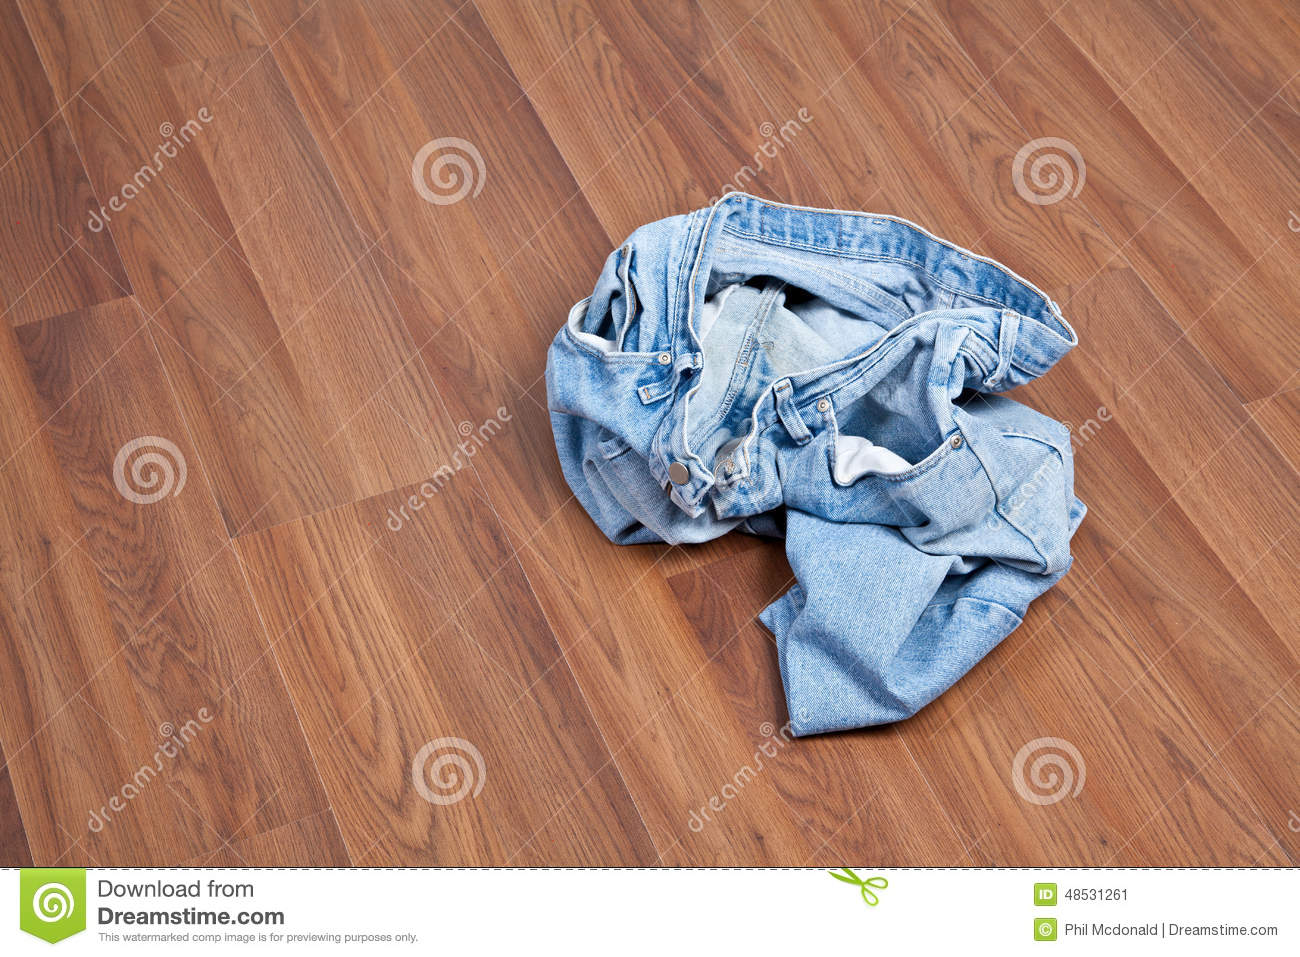 Crumpled jeans on floor stock image image of pants for On the floor on the floor